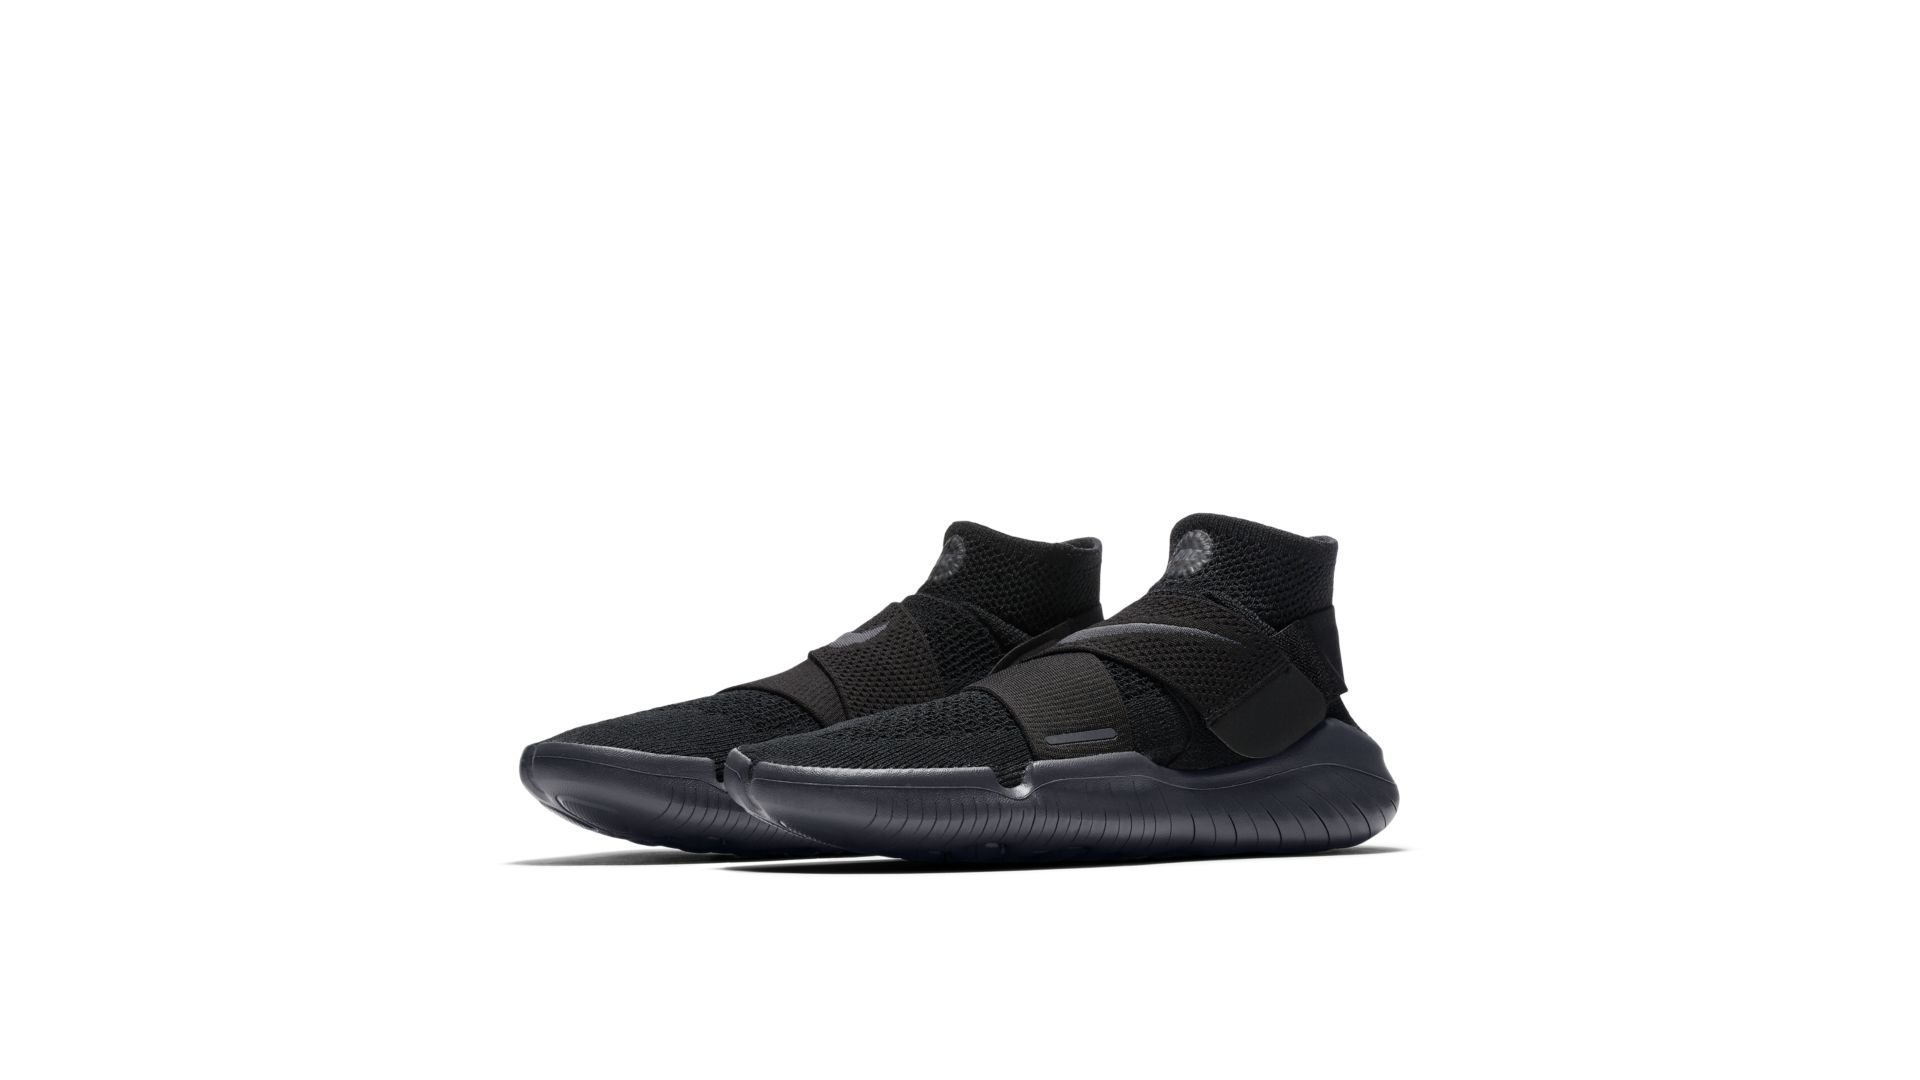 Nike Free RN Motion Flyknit 2018 Black Anthracite (942840-002)